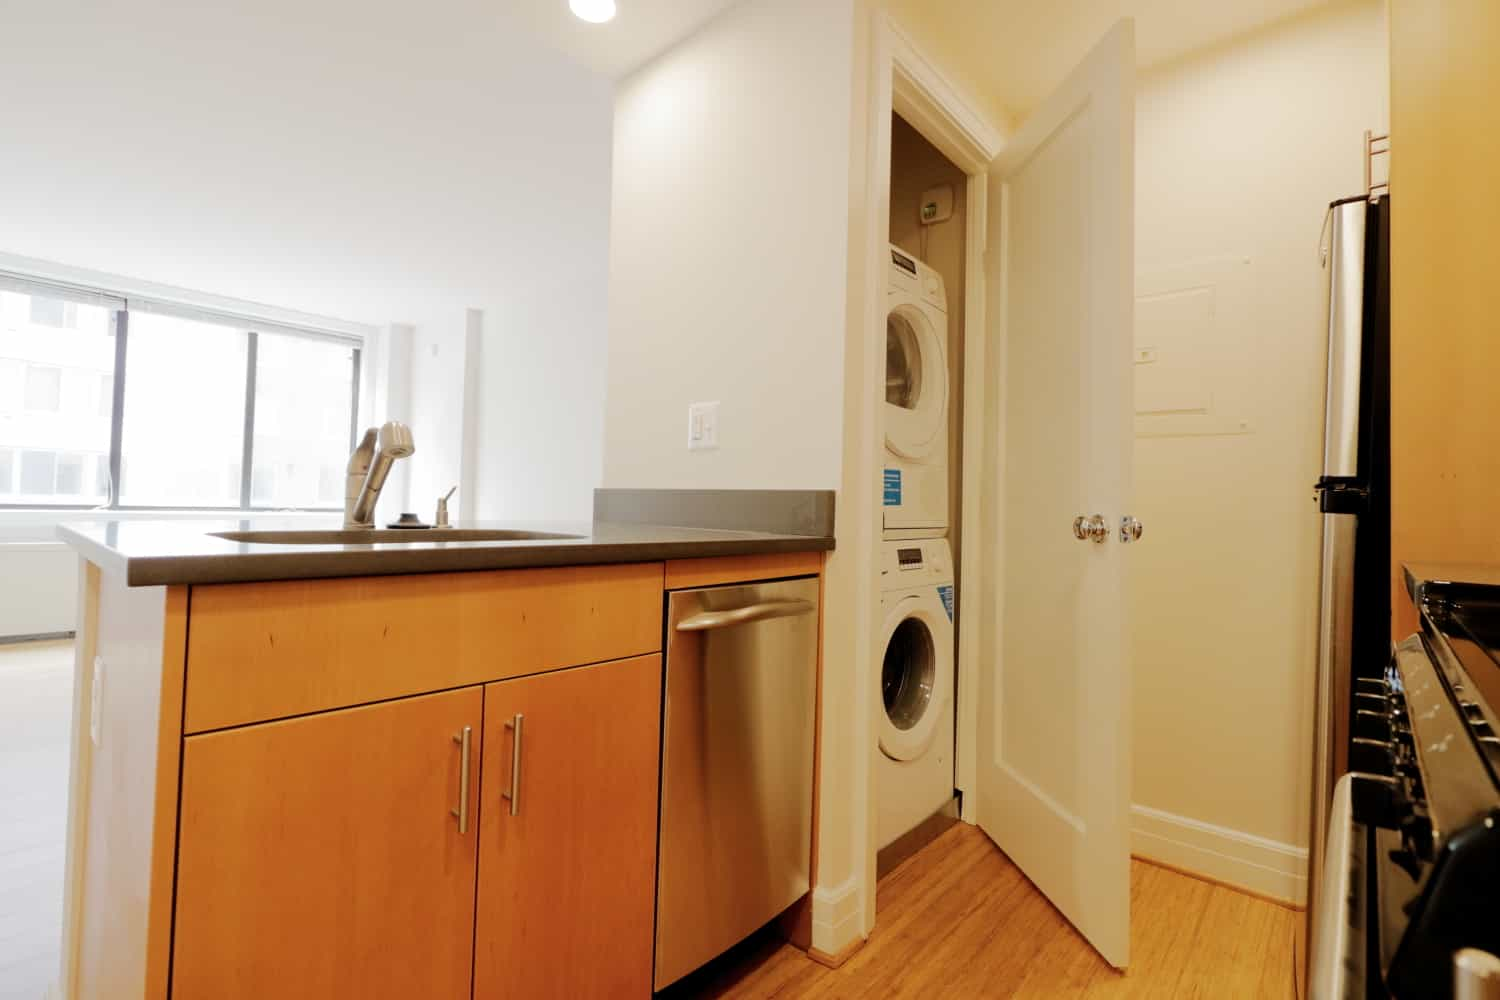 M Street Tower Apartment Laundry Room